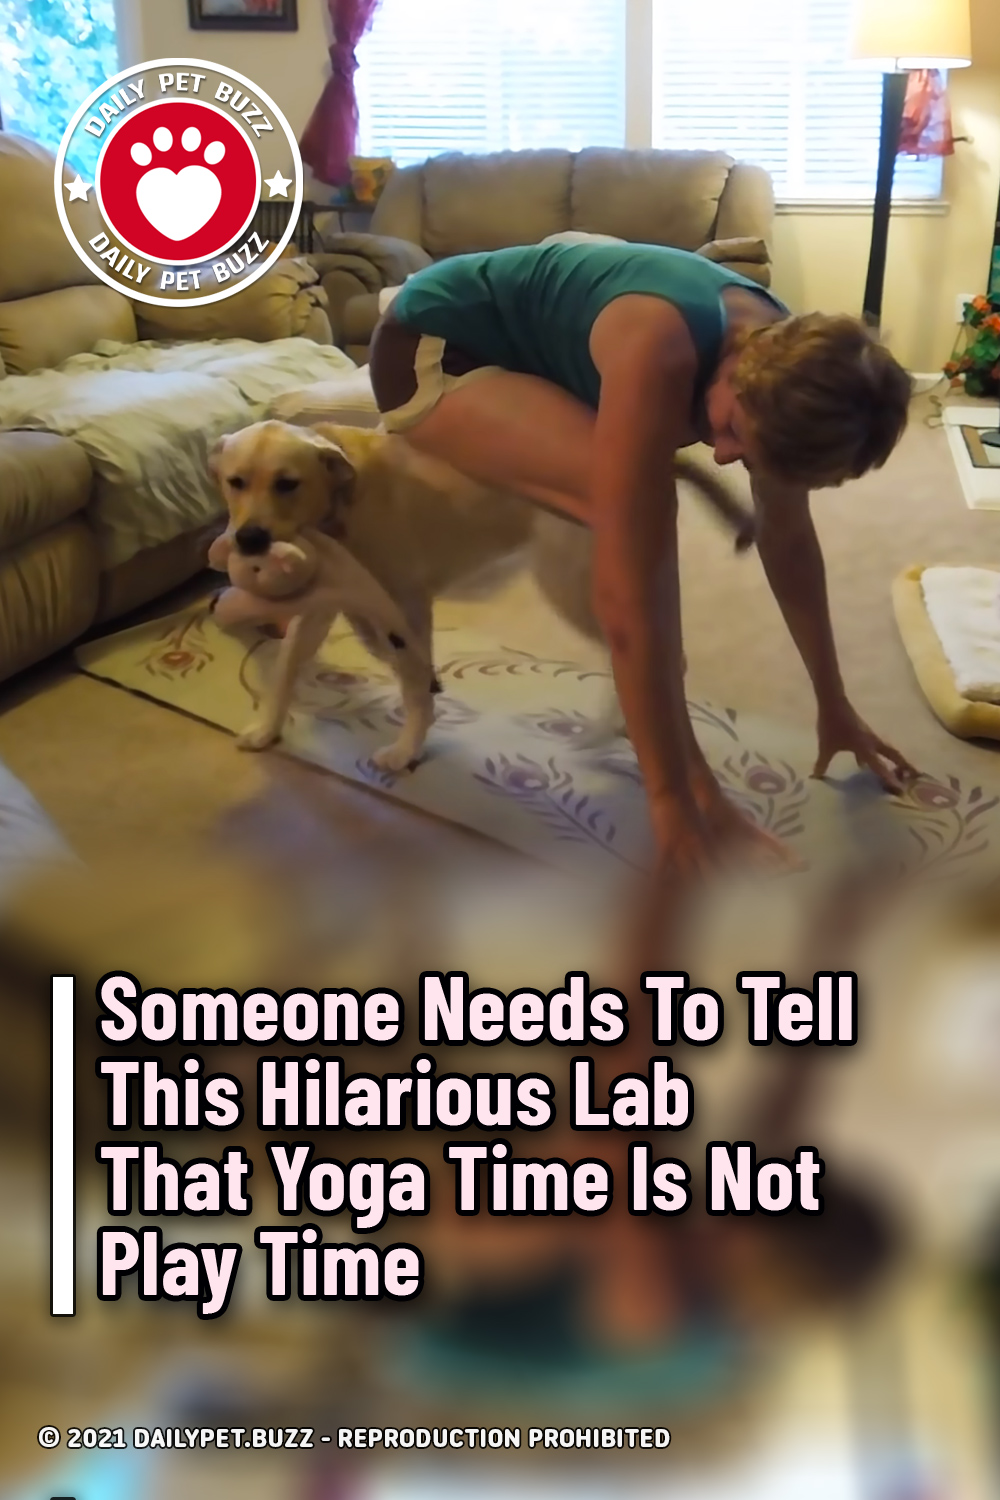 Someone Needs To Tell This Hilarious Lab That Yoga Time Is Not Play Time